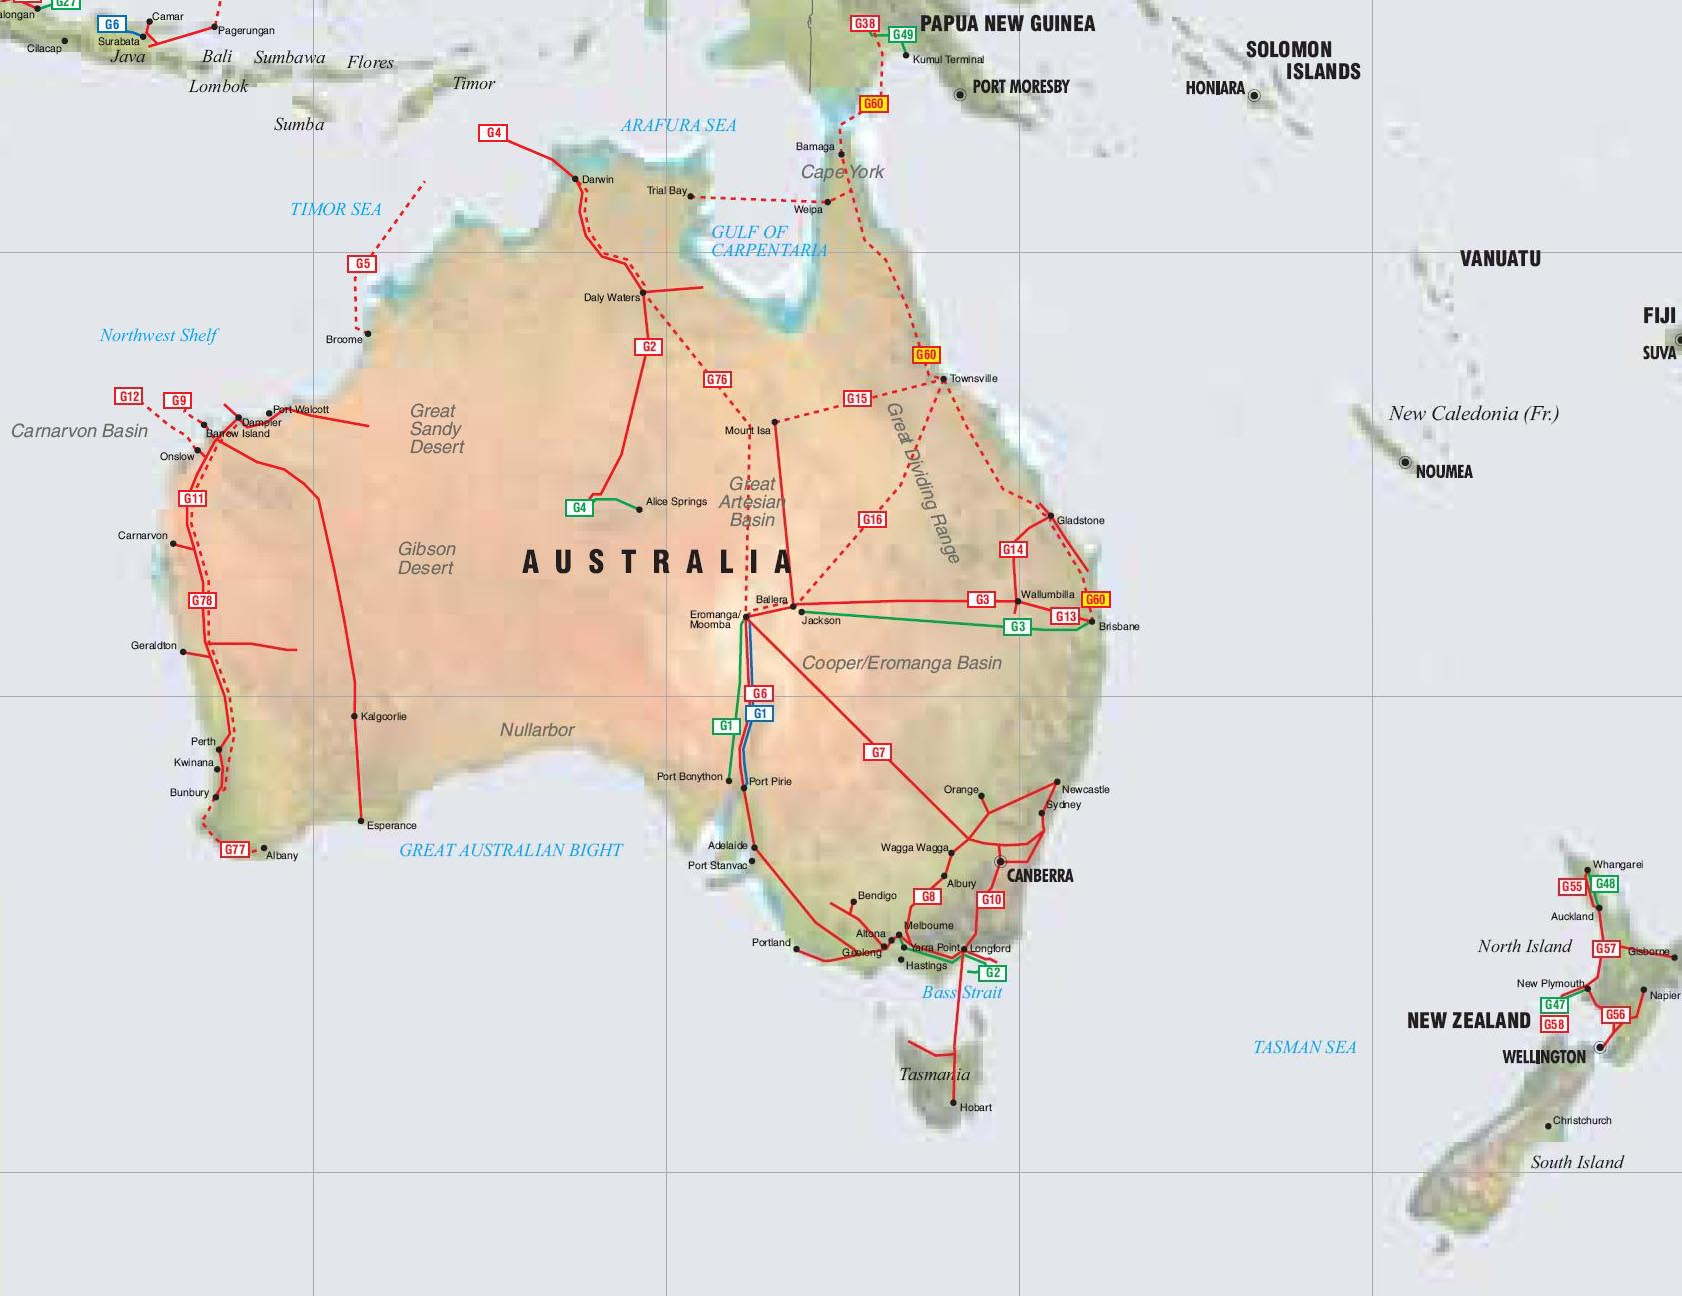 Australia New Zealand and Papua New Guinea Pipelines map Crude Oil petrol